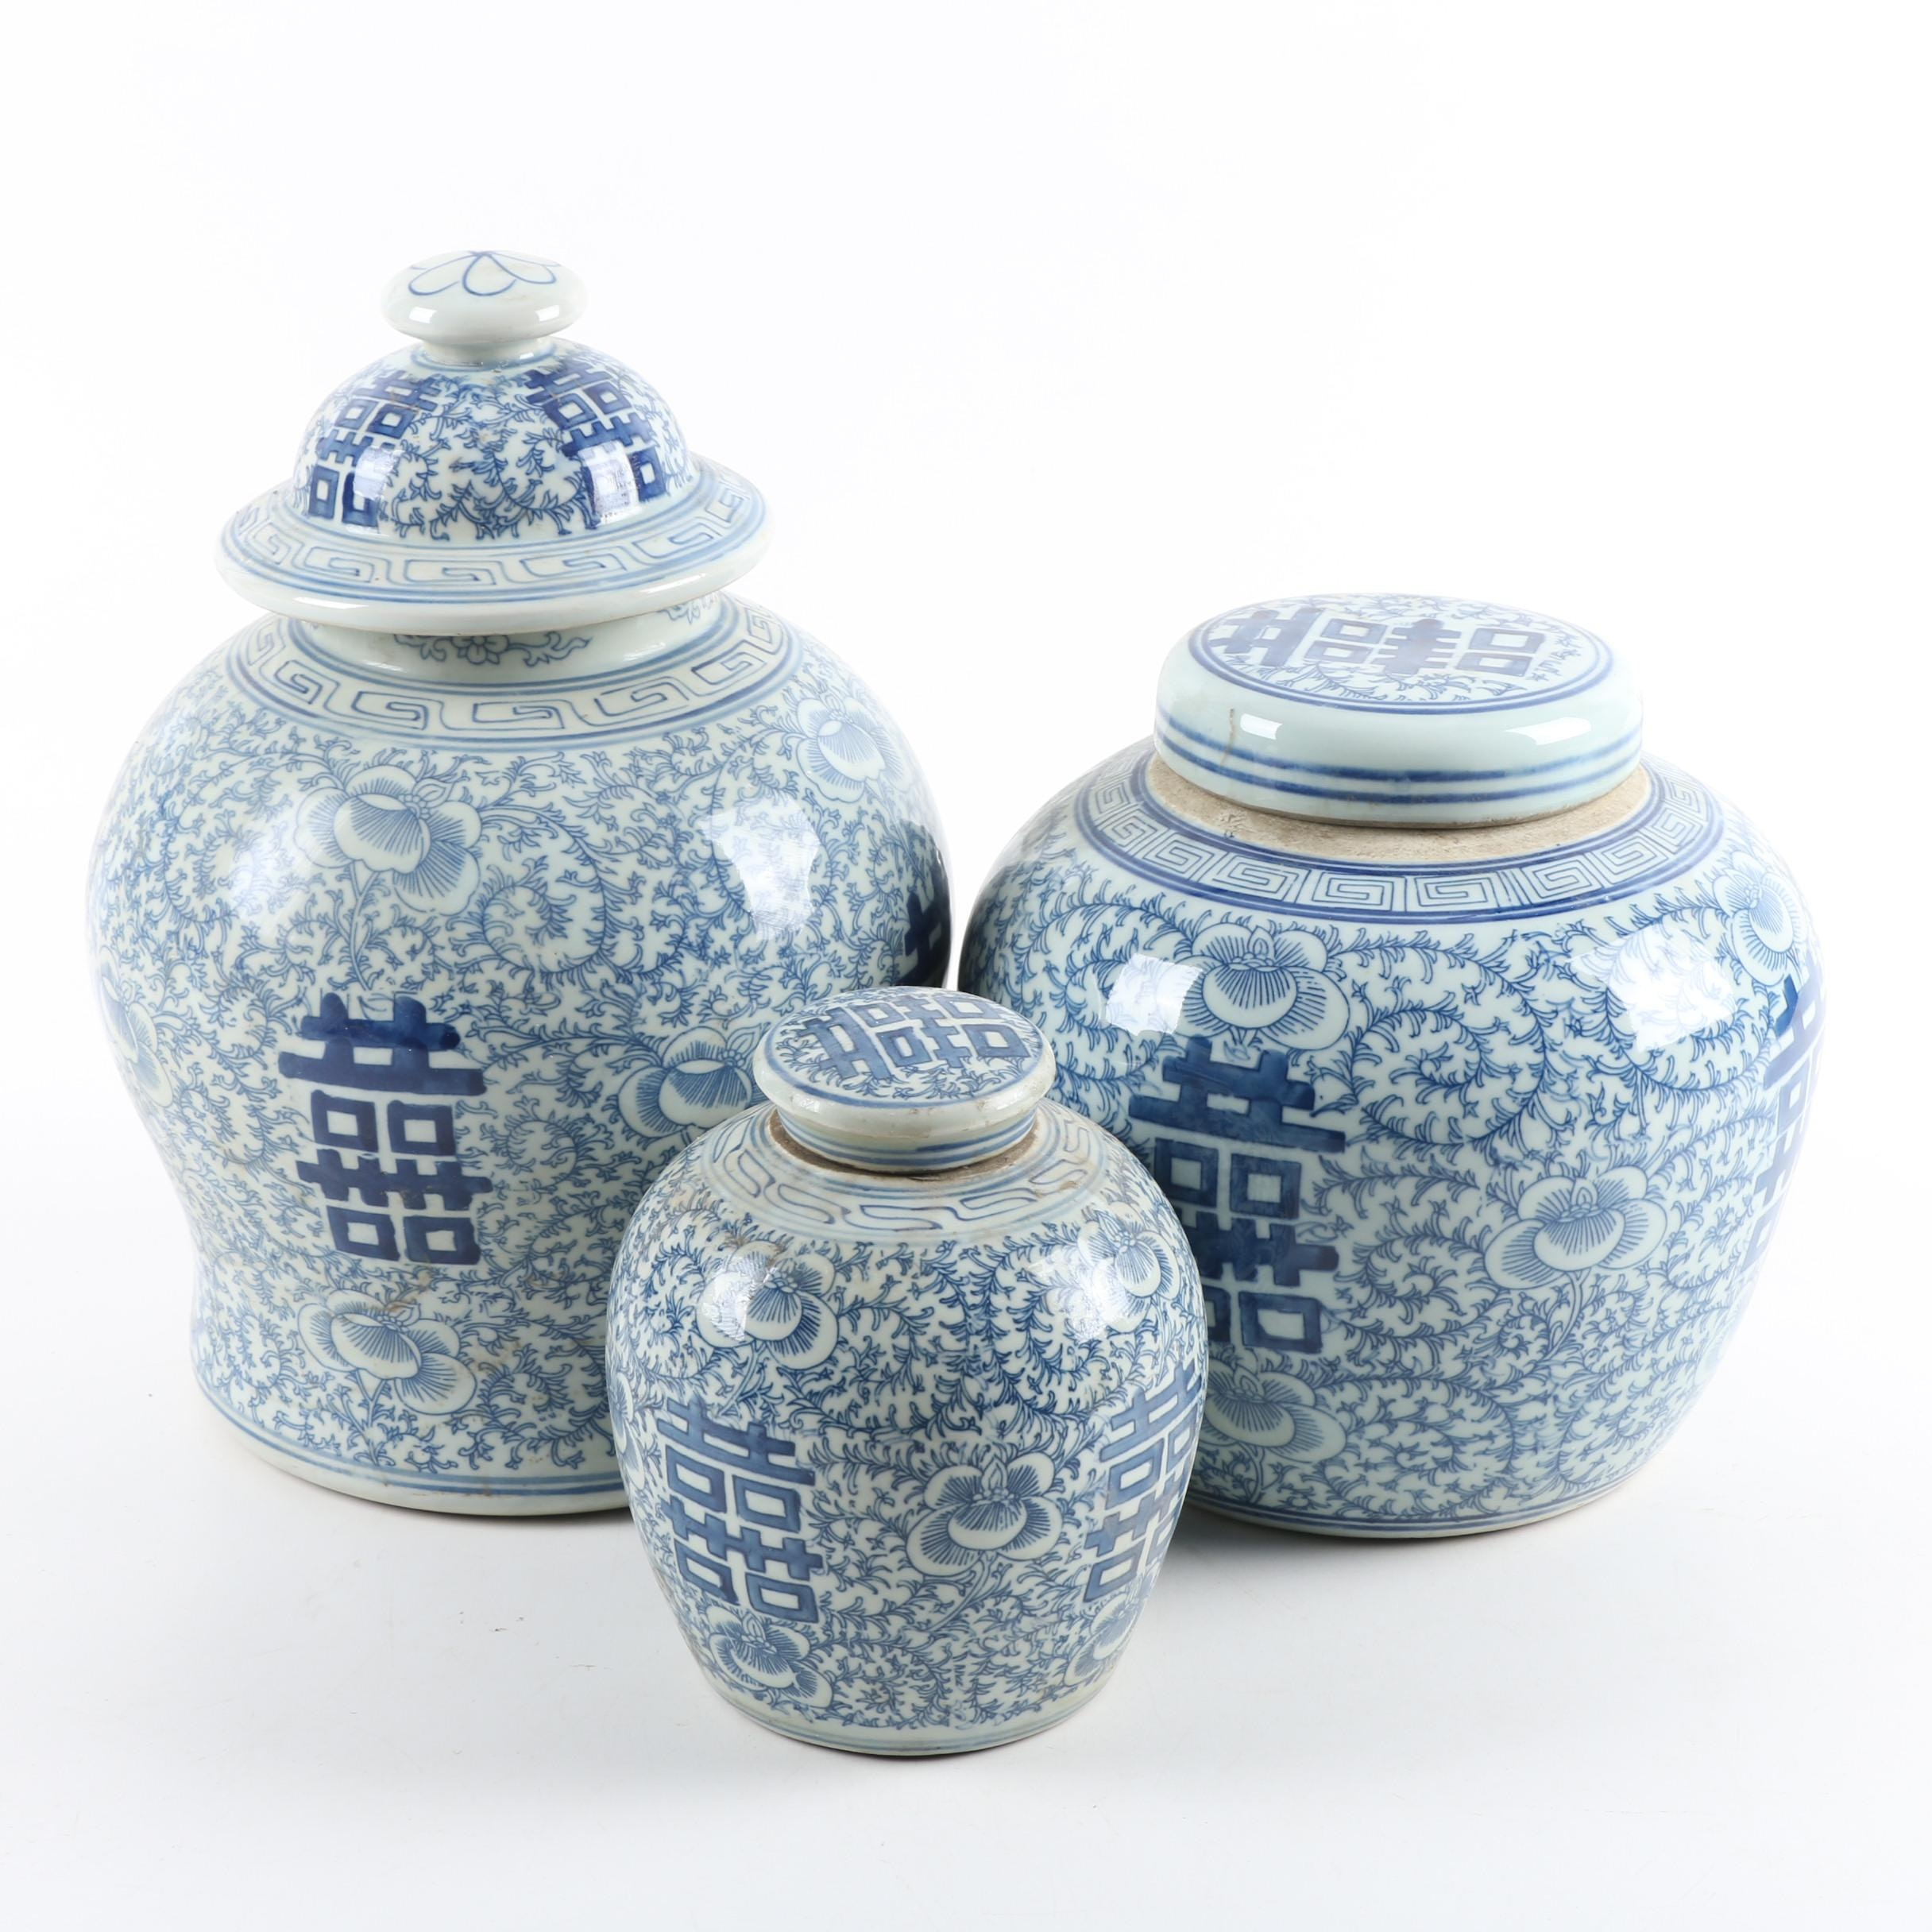 Chinese Blue and White Double Happiness Ceramic Ginger Jars